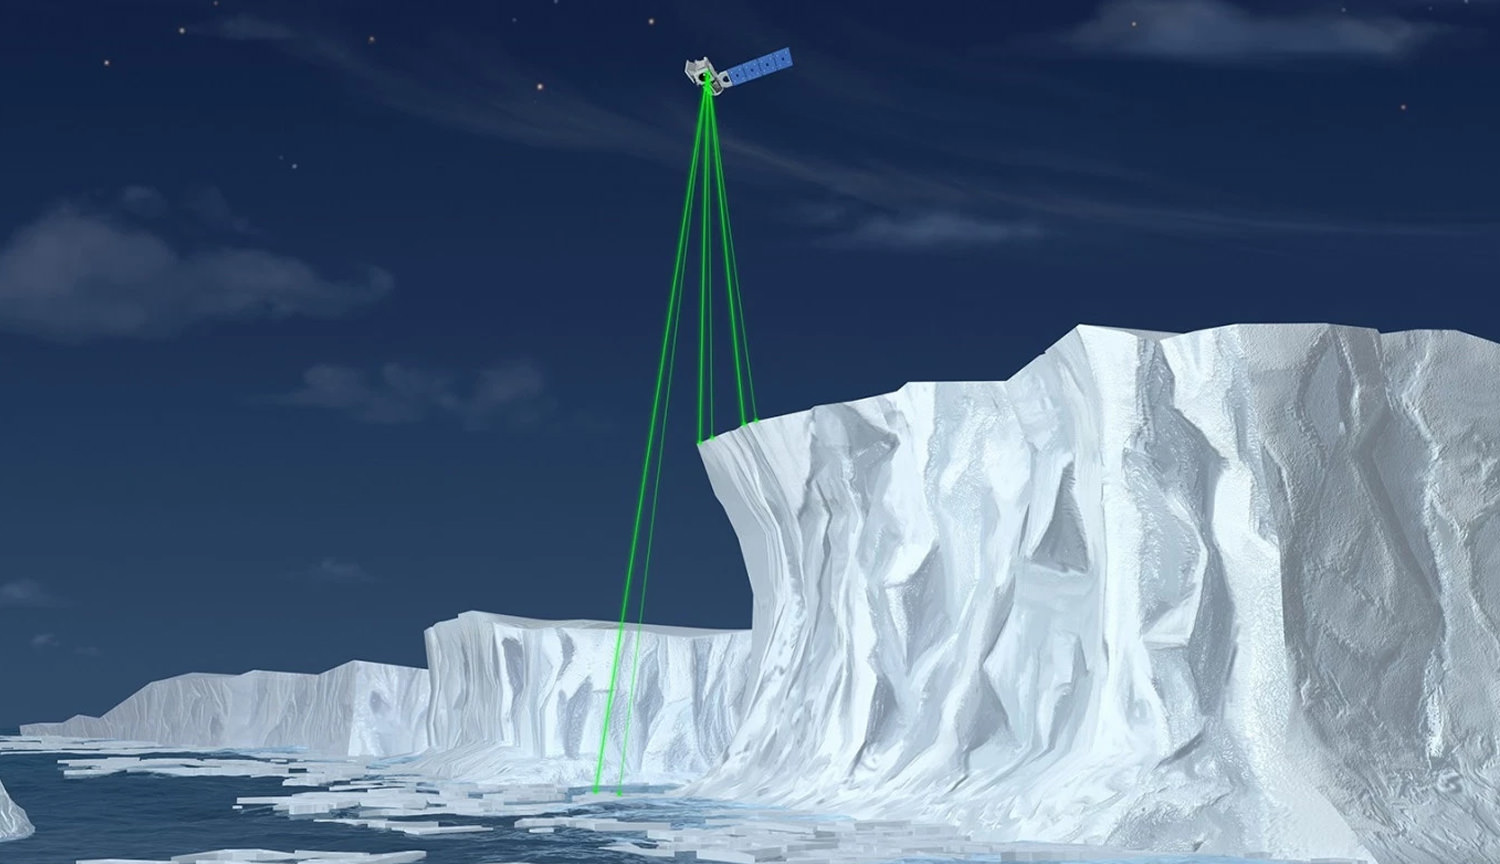 Webcast: NASA will launch a satellite ICESat-2 to study ice cover of the Earth